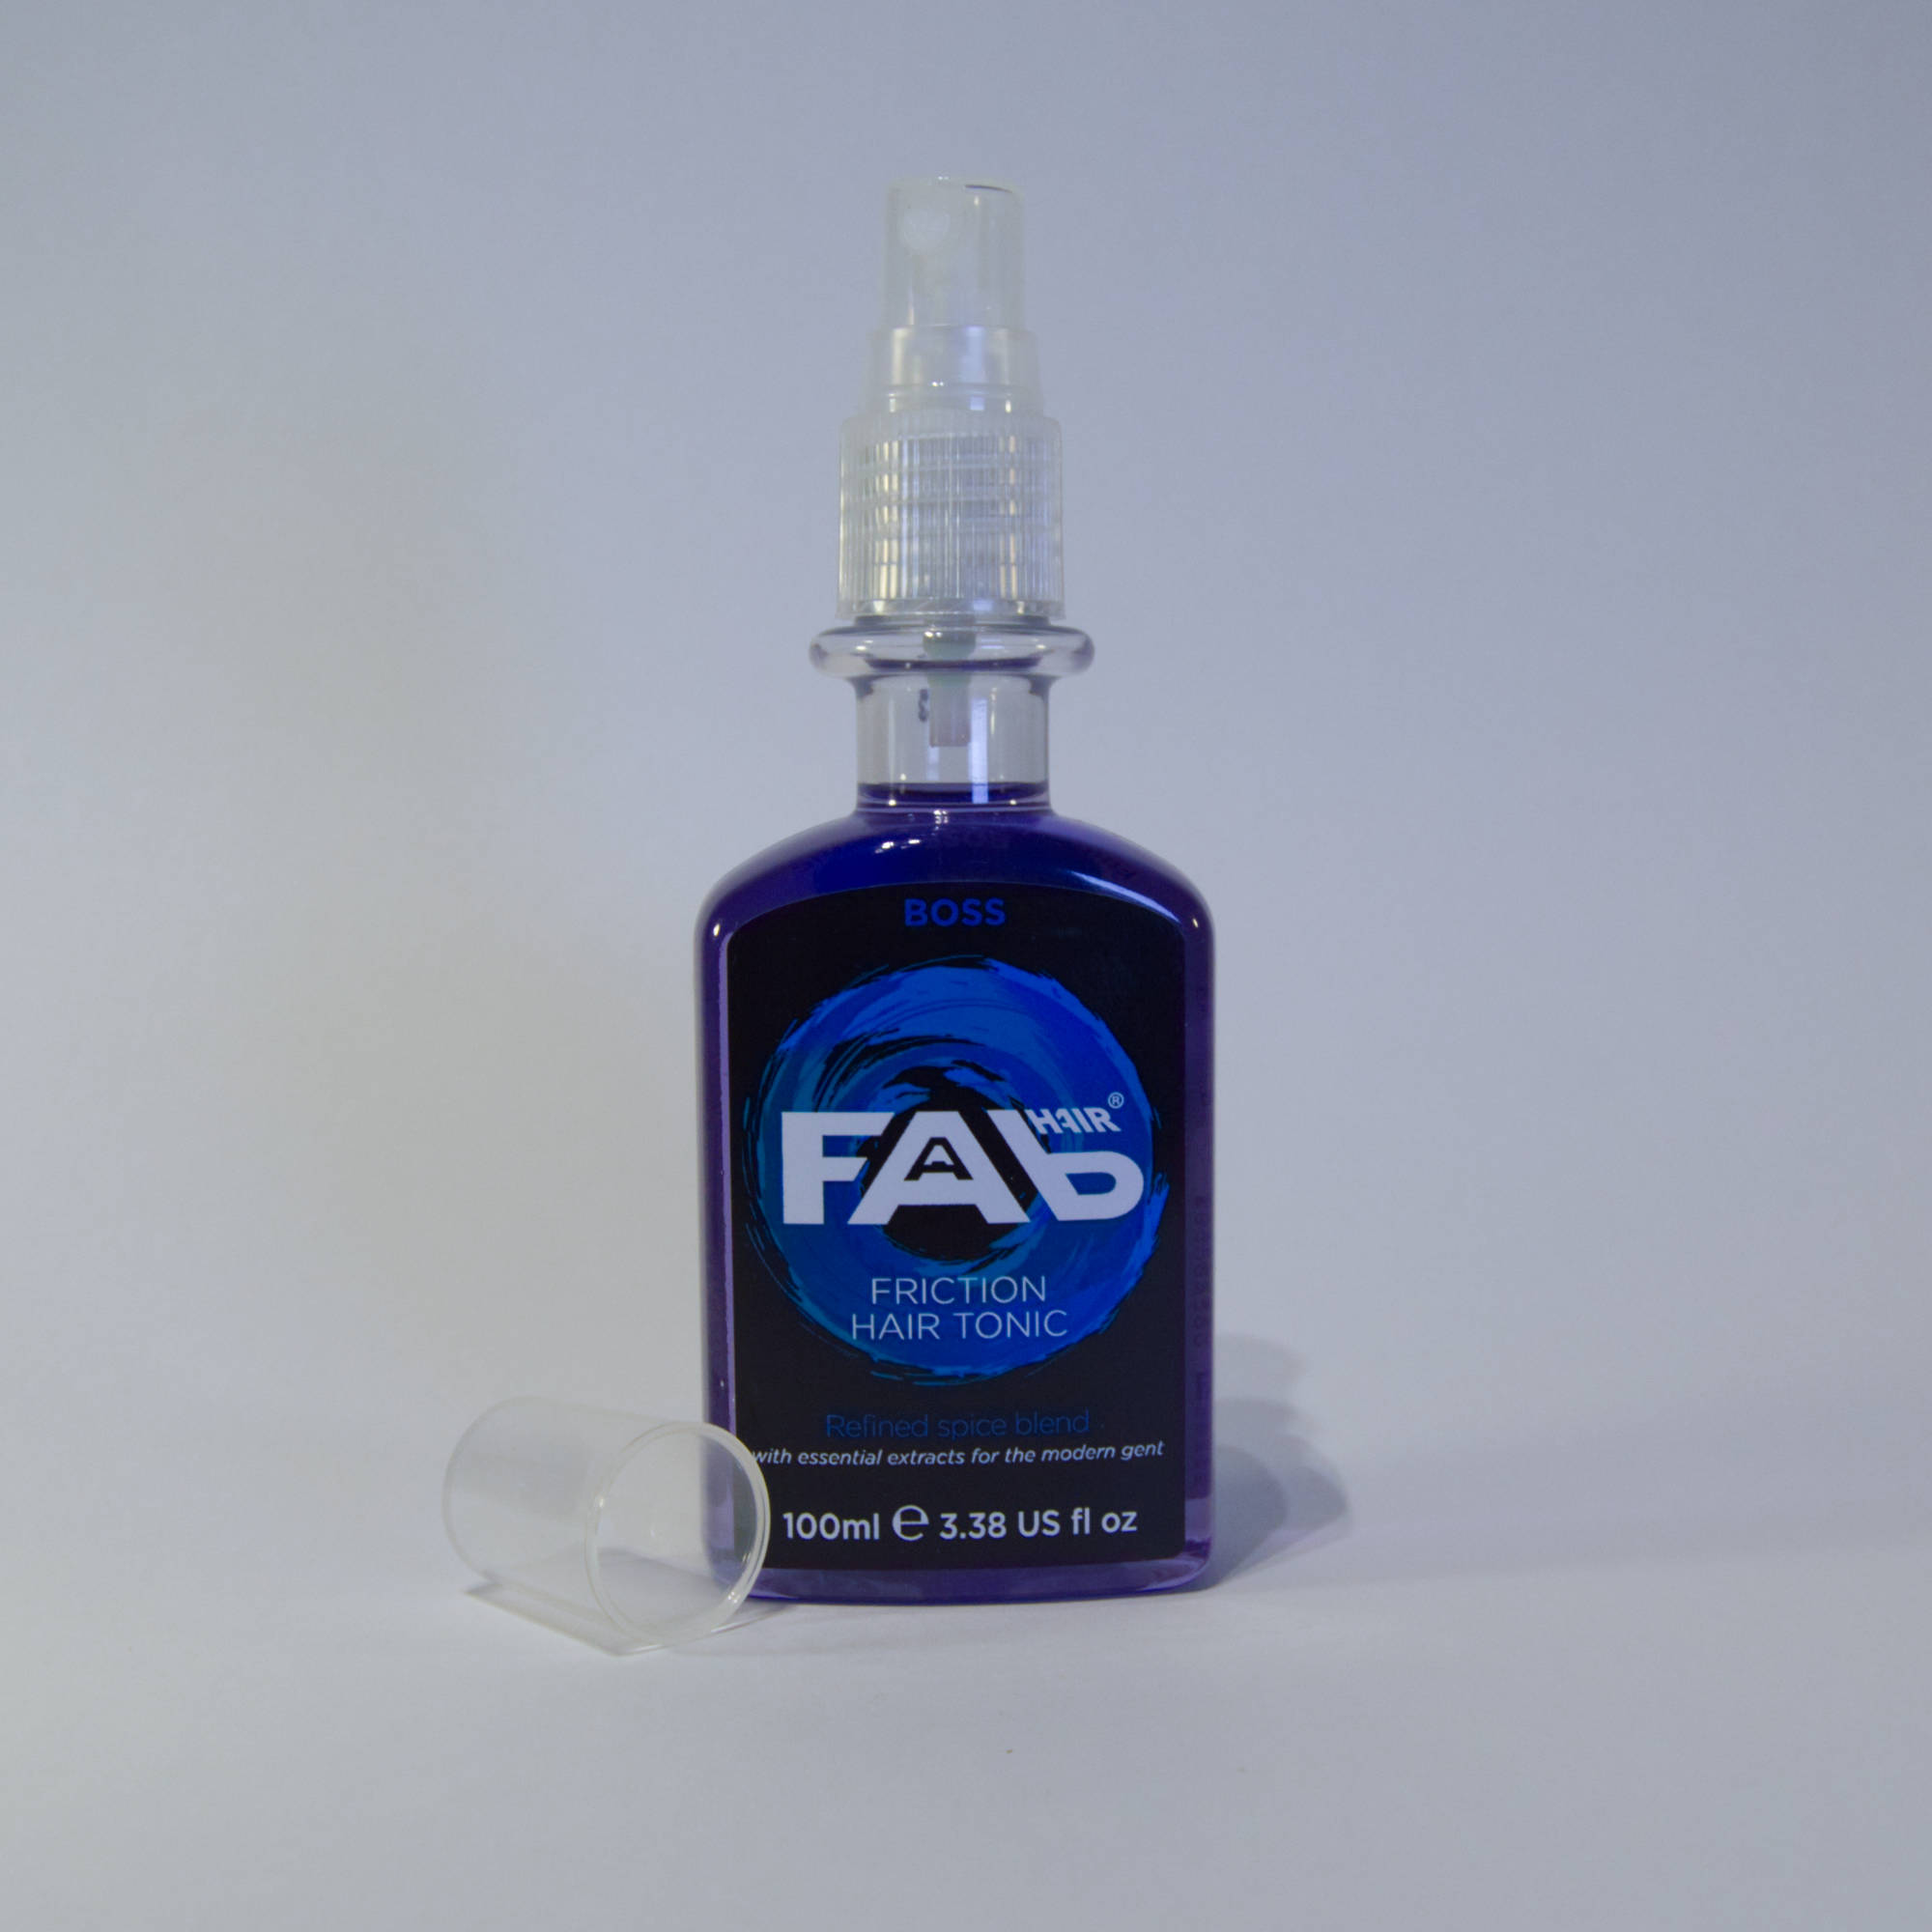 100ml bottle of Boss flavoured FAB friction hair tonic with Spray Nozzle